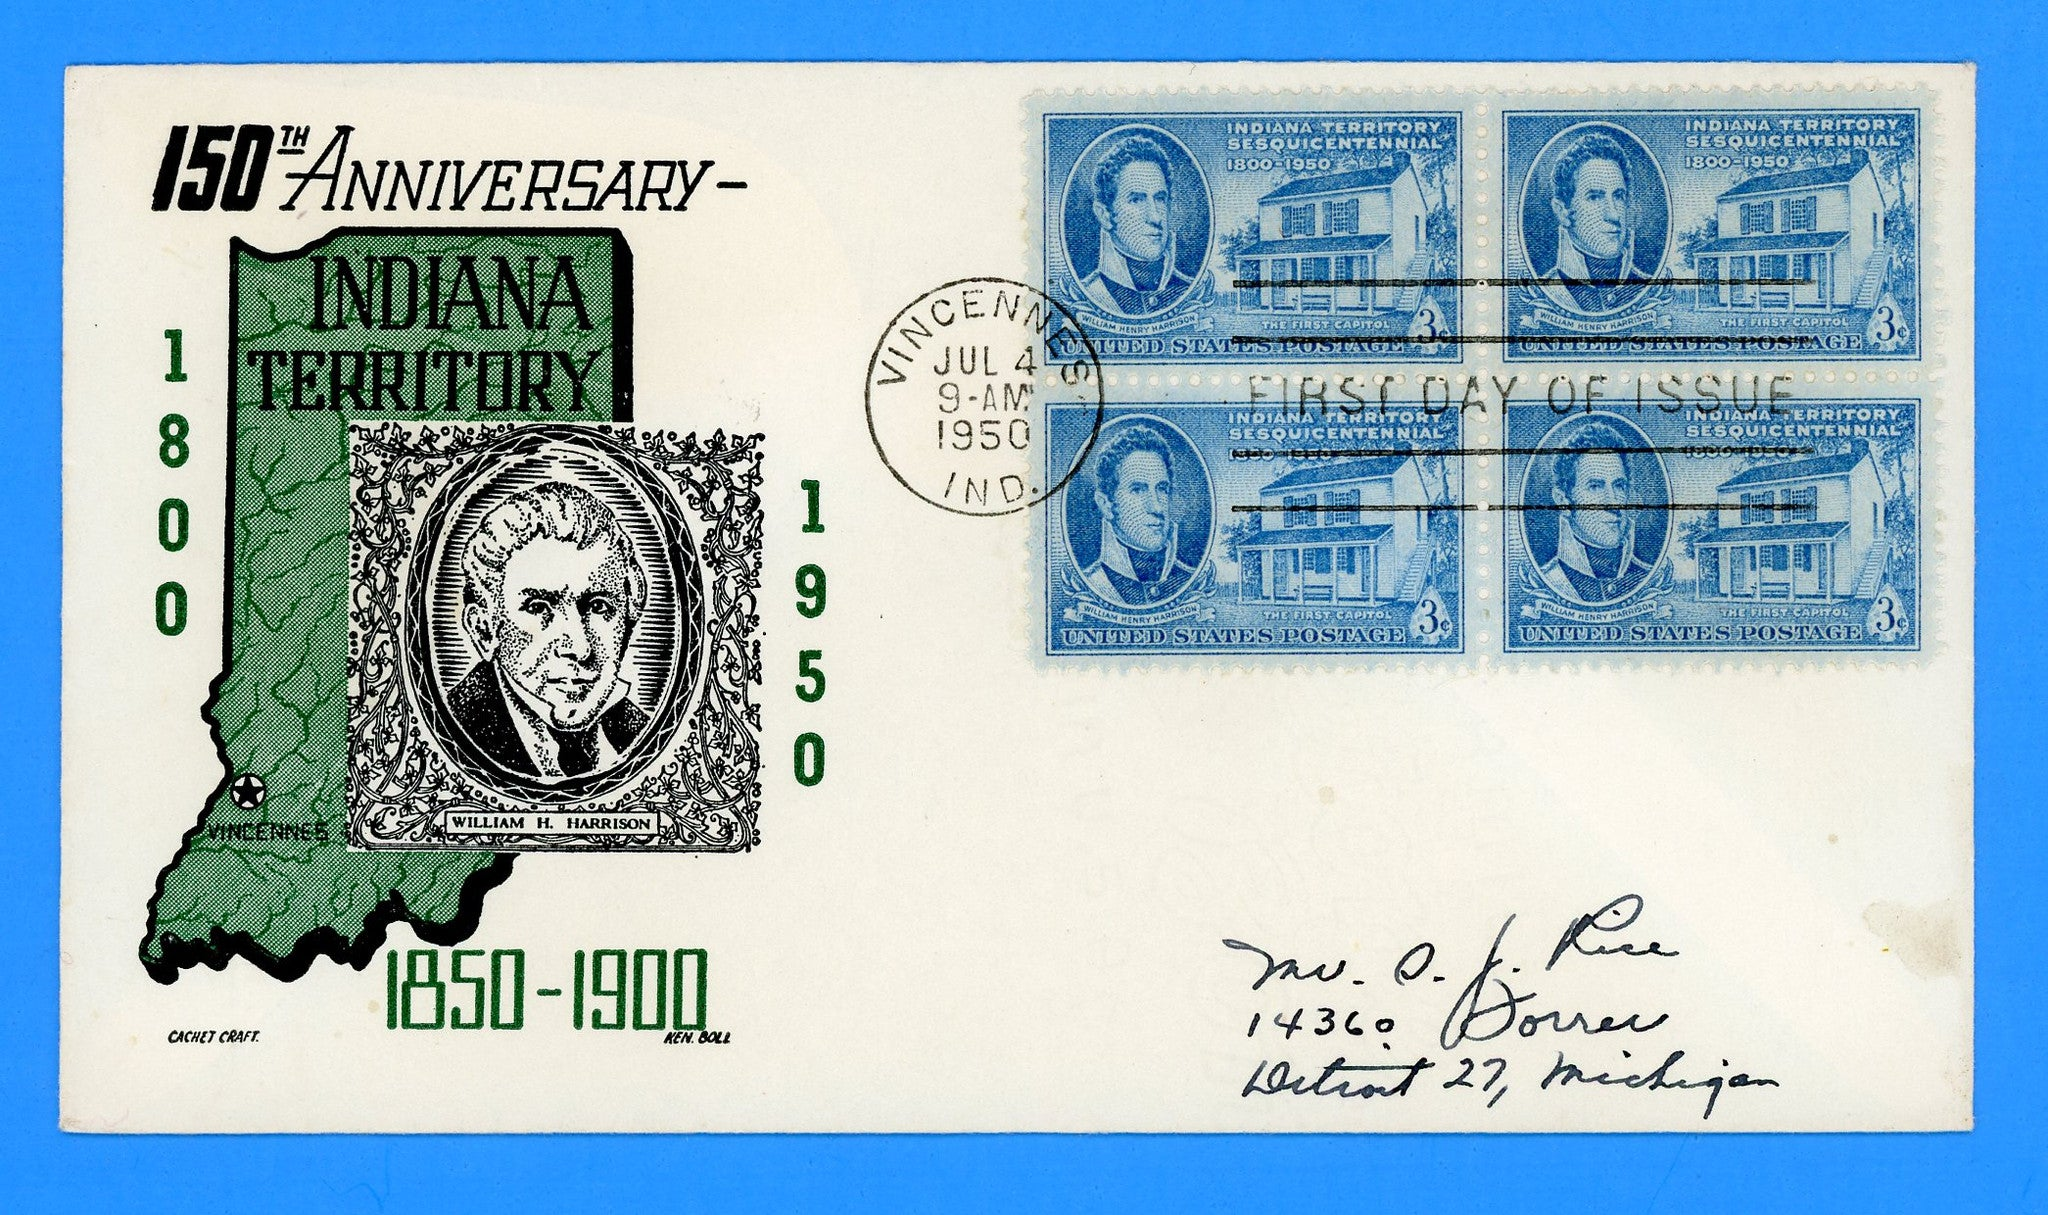 Scott #996 Indiana Territory First Day Cover by Cachet Craft/Boll